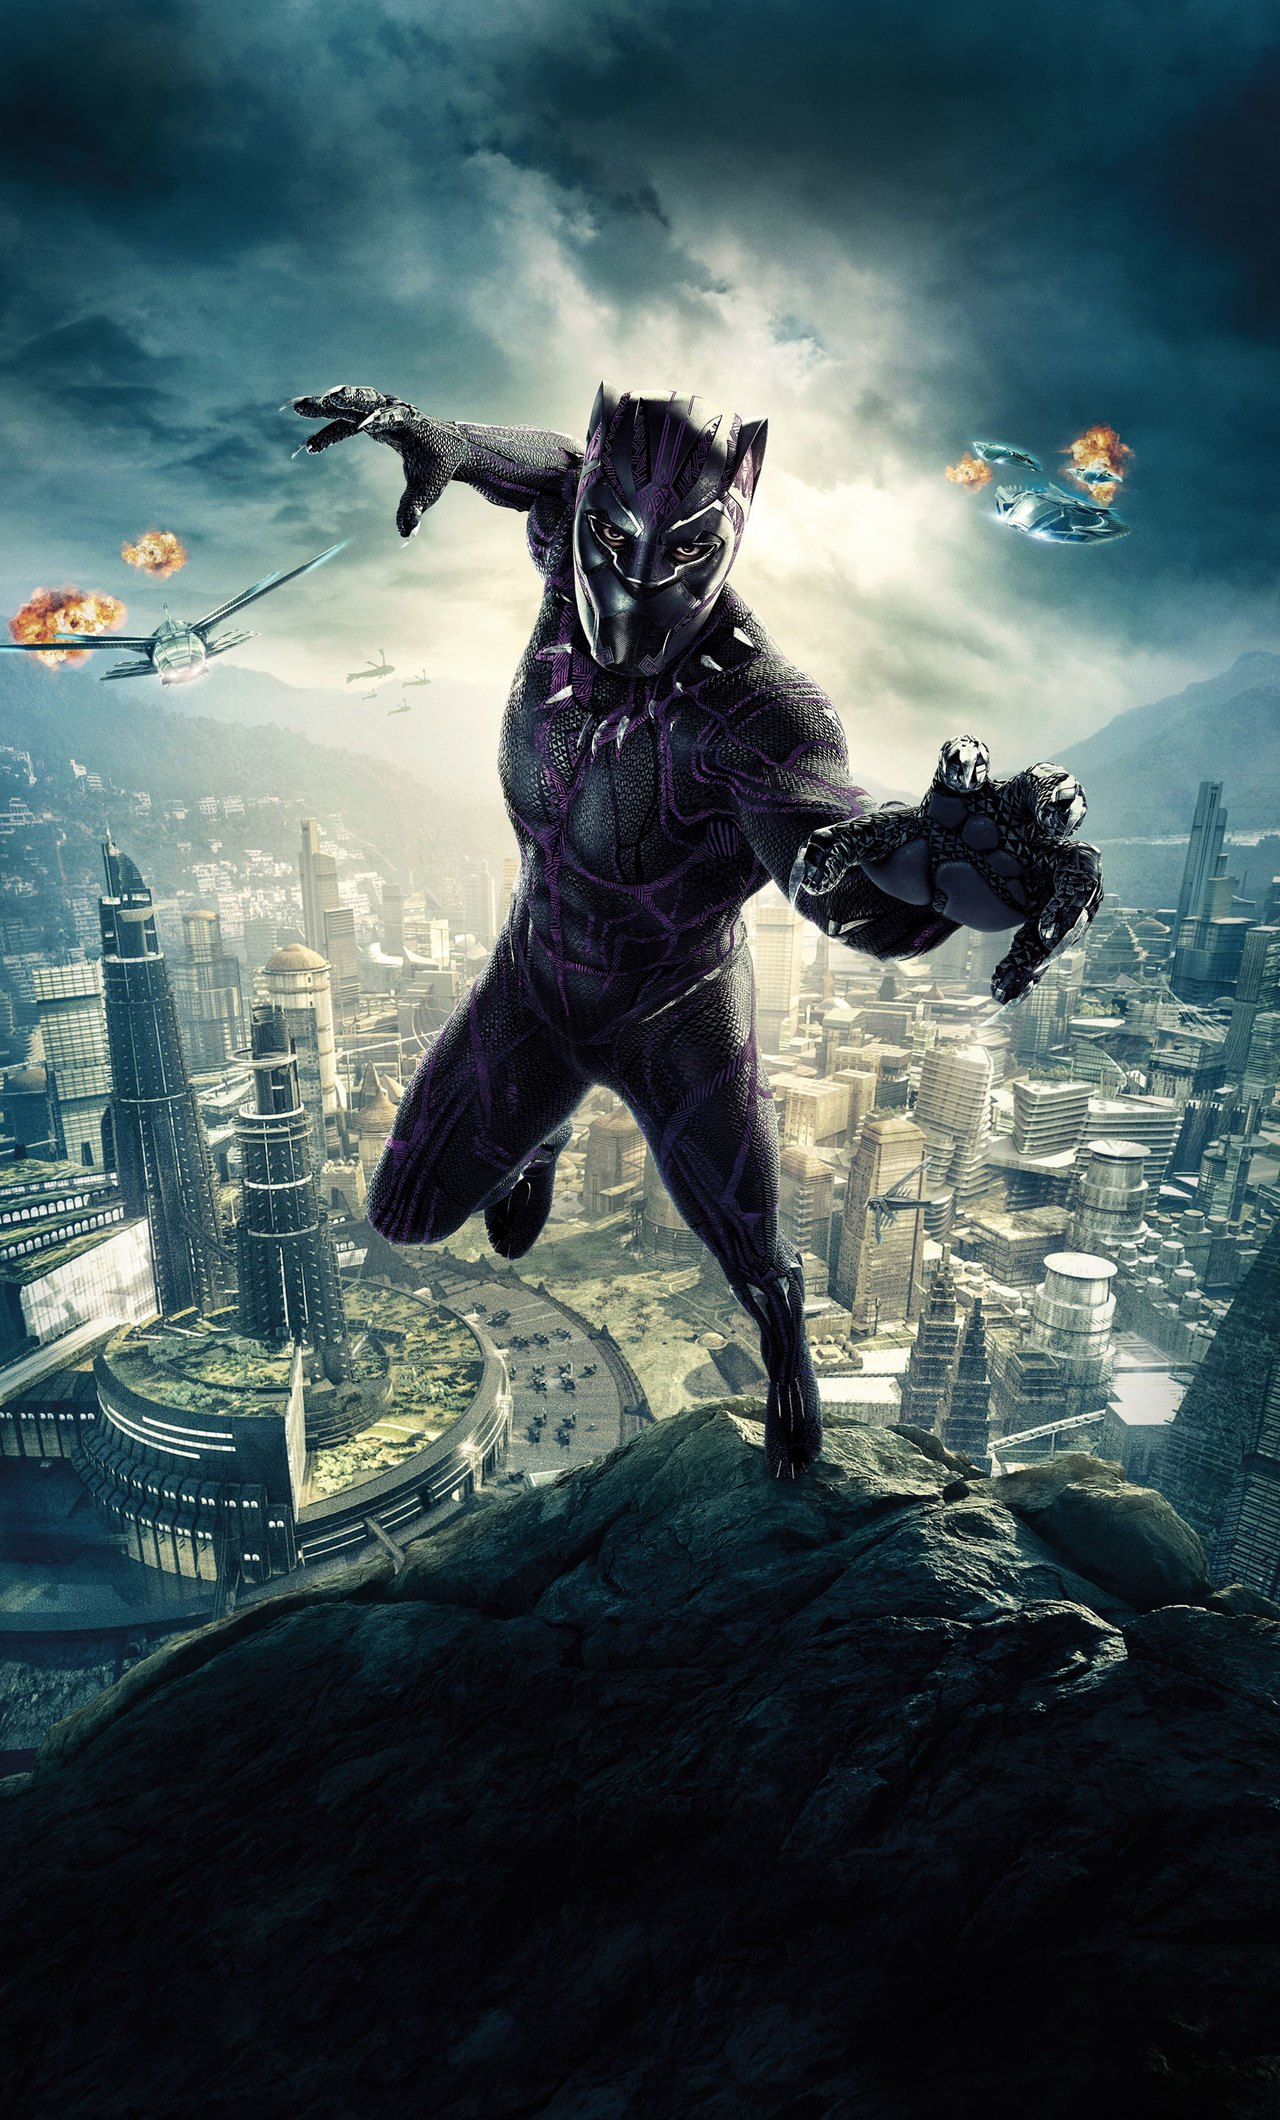 1280x2120 Black Panther HD Wallpapers For iPhone and Android Mobile ...